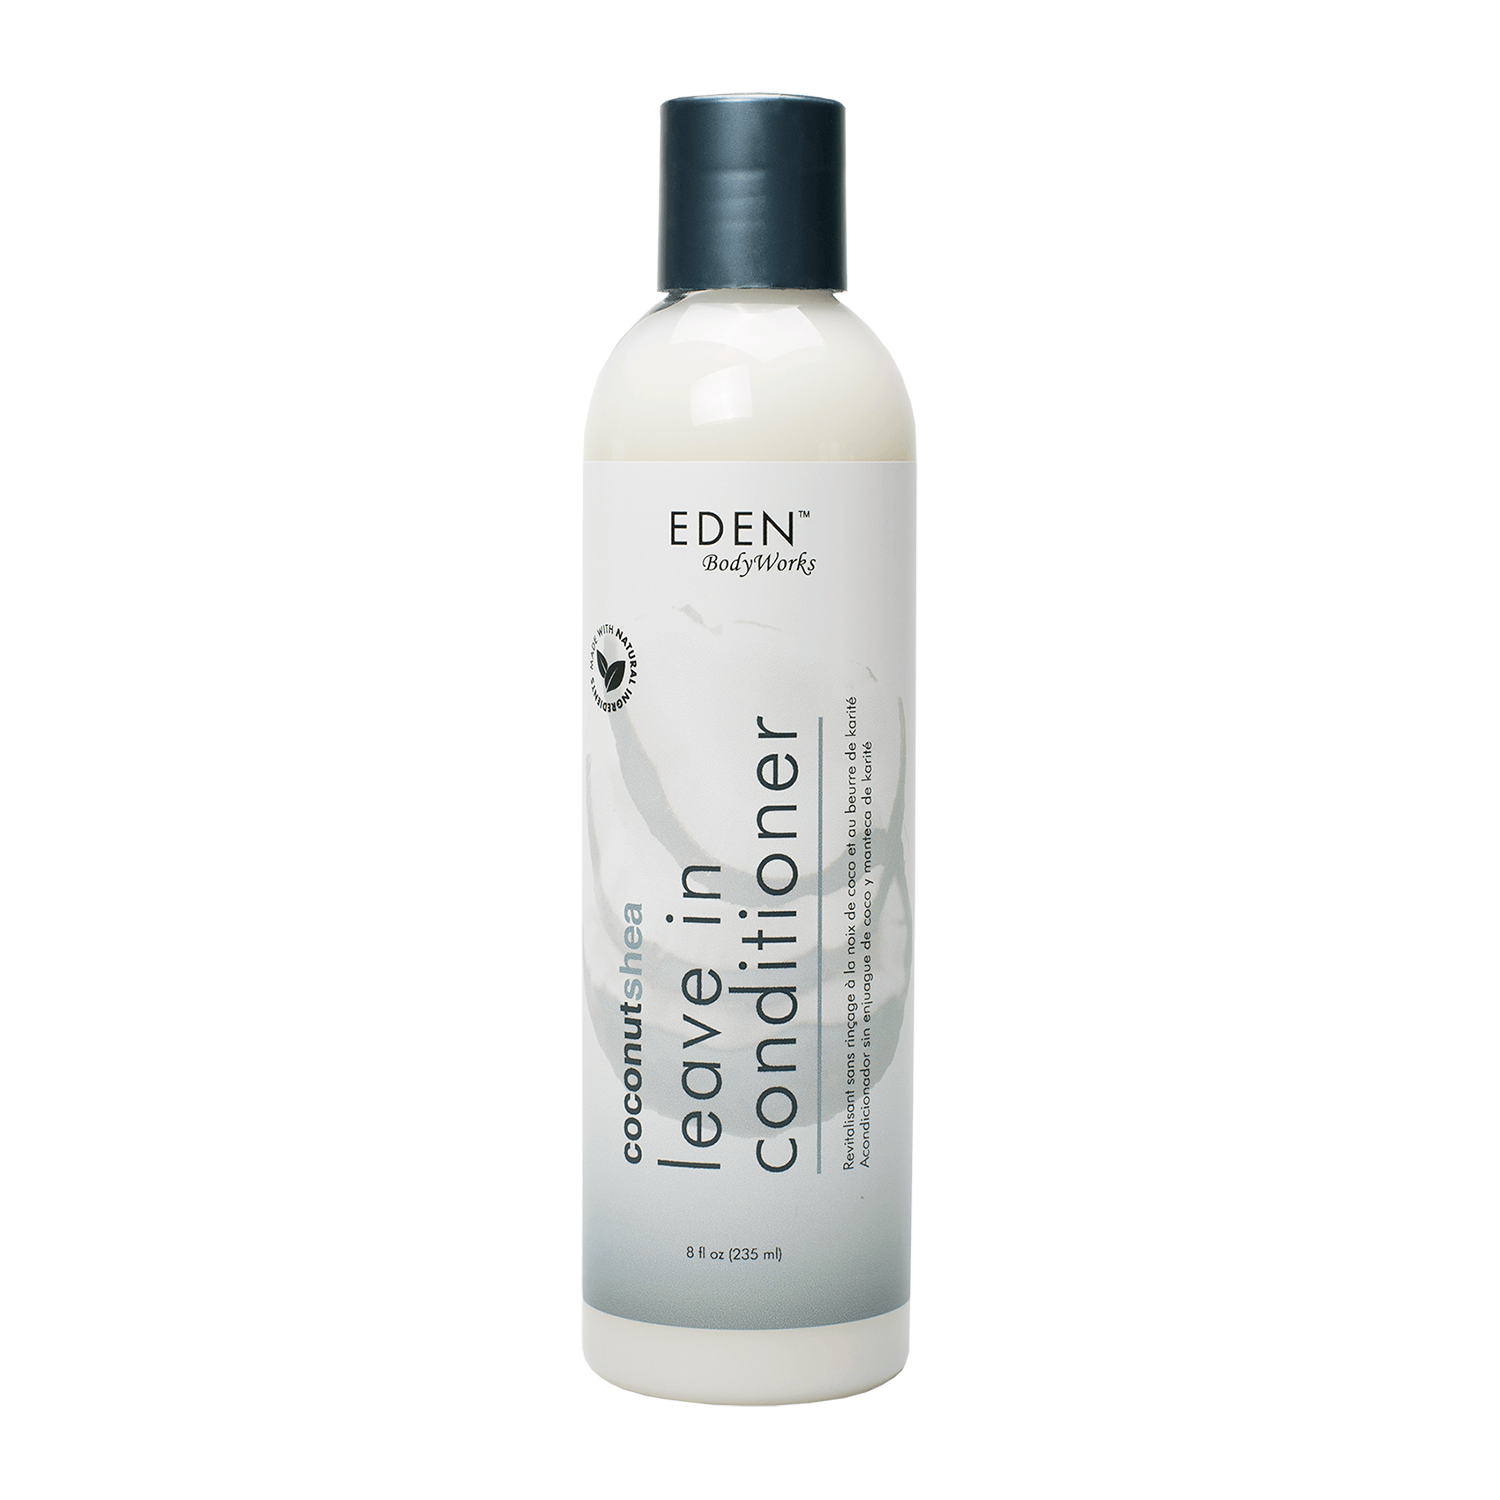 Sally Beauty coupon: EDEN BodyWorks Coconut Shea Leave In Conditioner | 8 fl. oz. | Sally Beauty